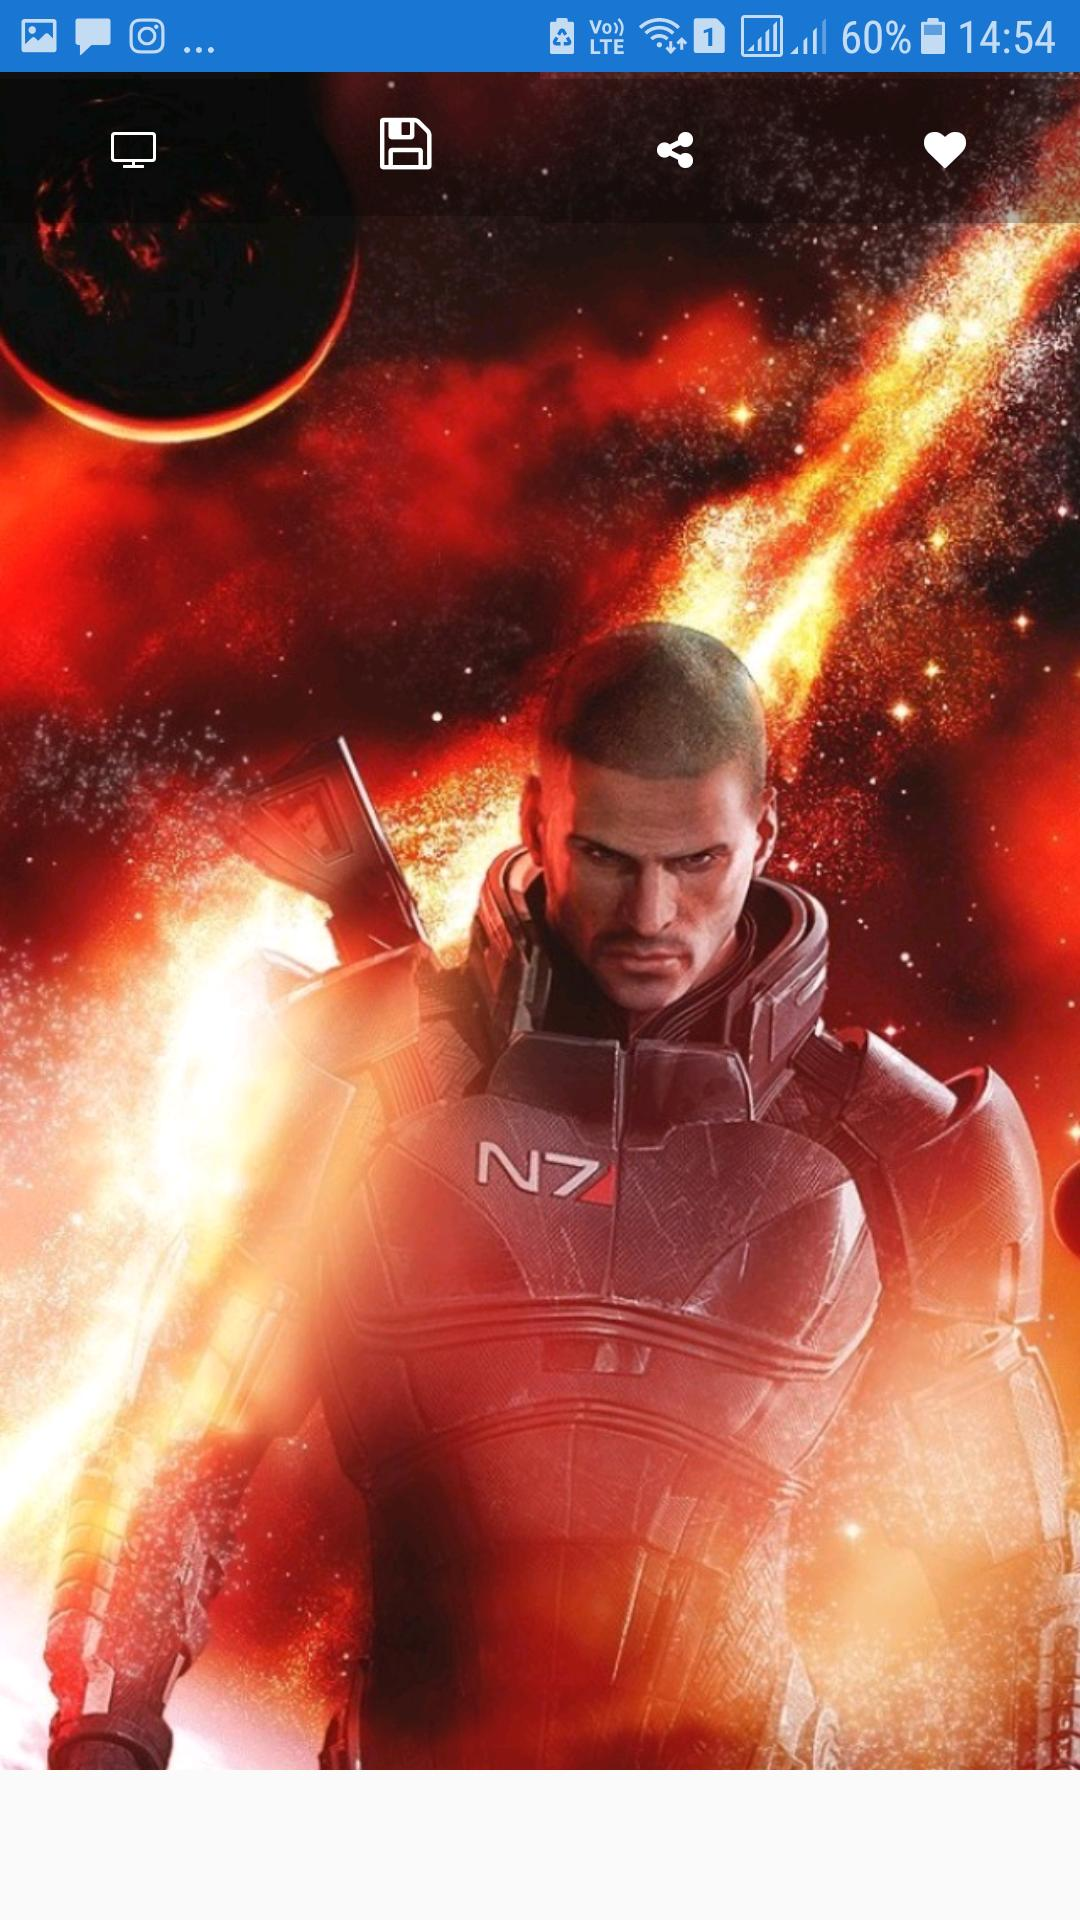 Mass Effect Wallpapers HD for Android - APK Download